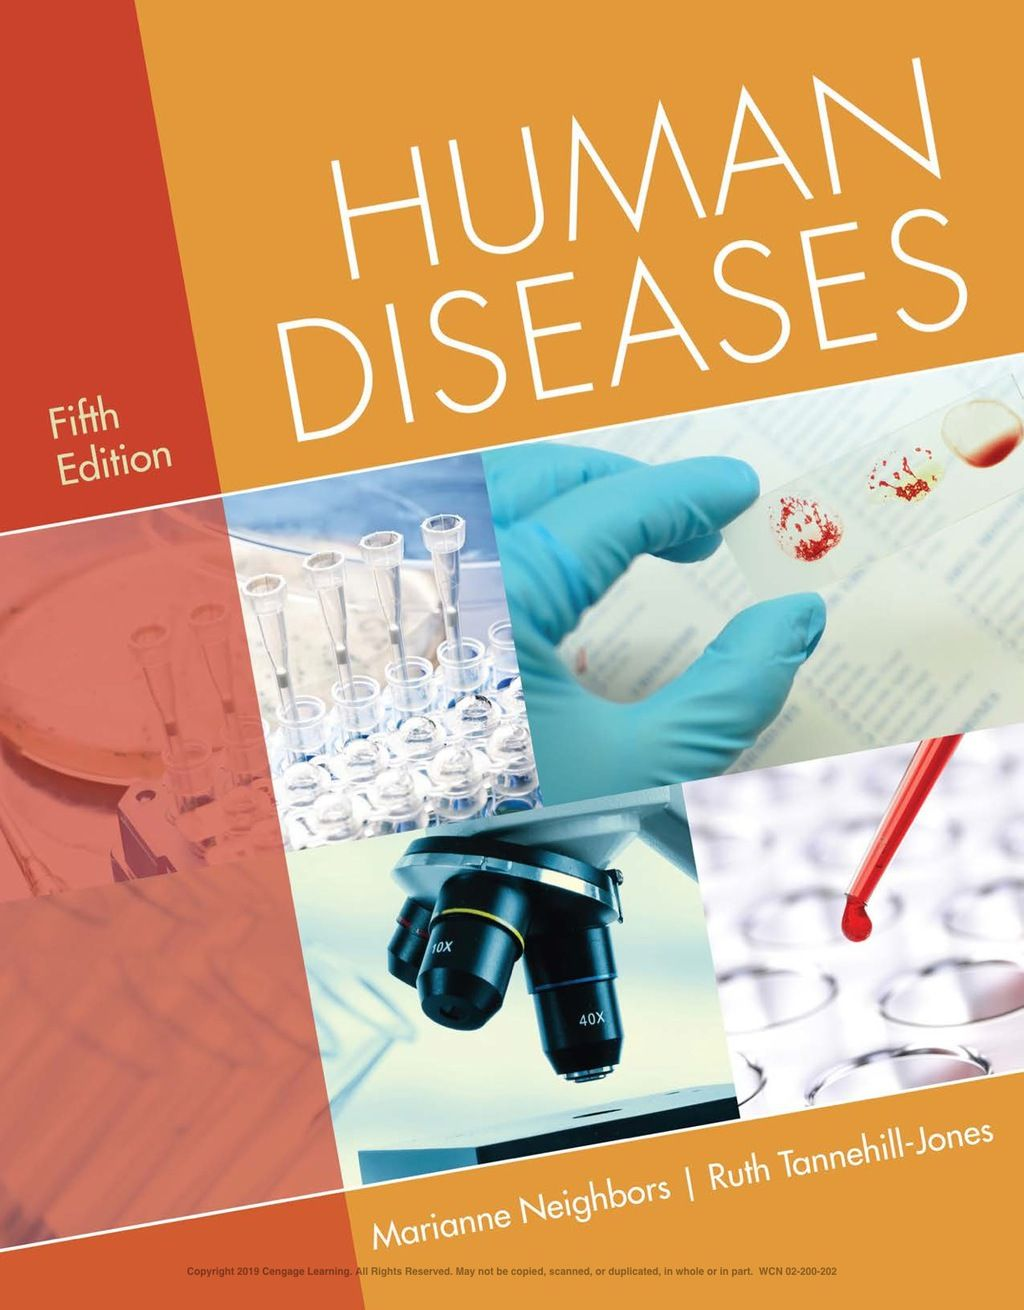 Human Diseases (eBook Rental) | Products | Books, Reading online